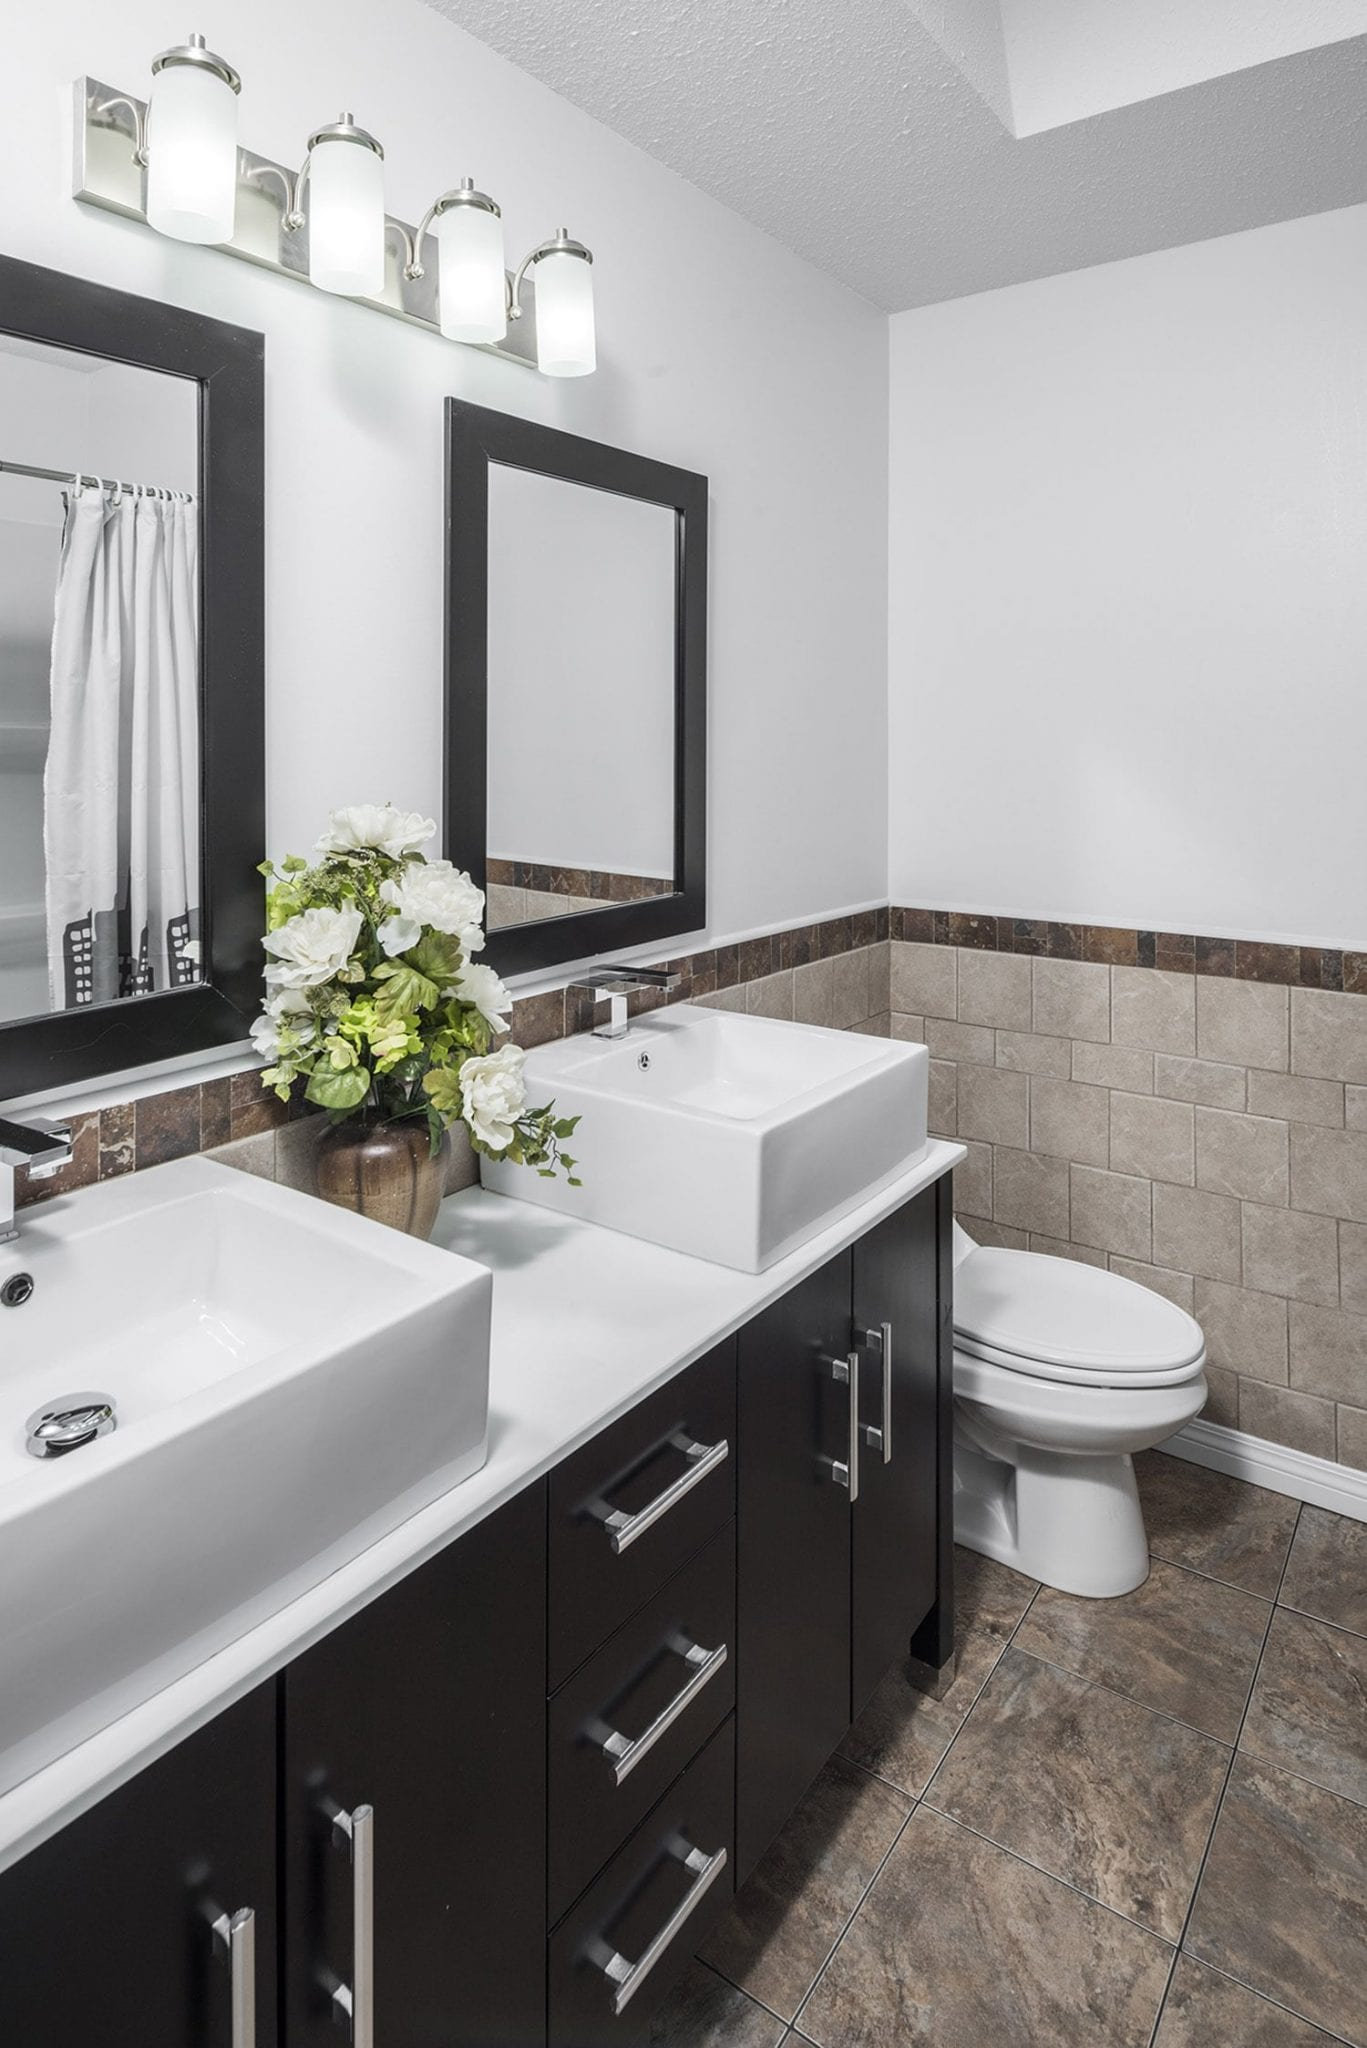 Chilliwack Bathroom Renovation Contractor Master Painting & Renovations Abbotsford